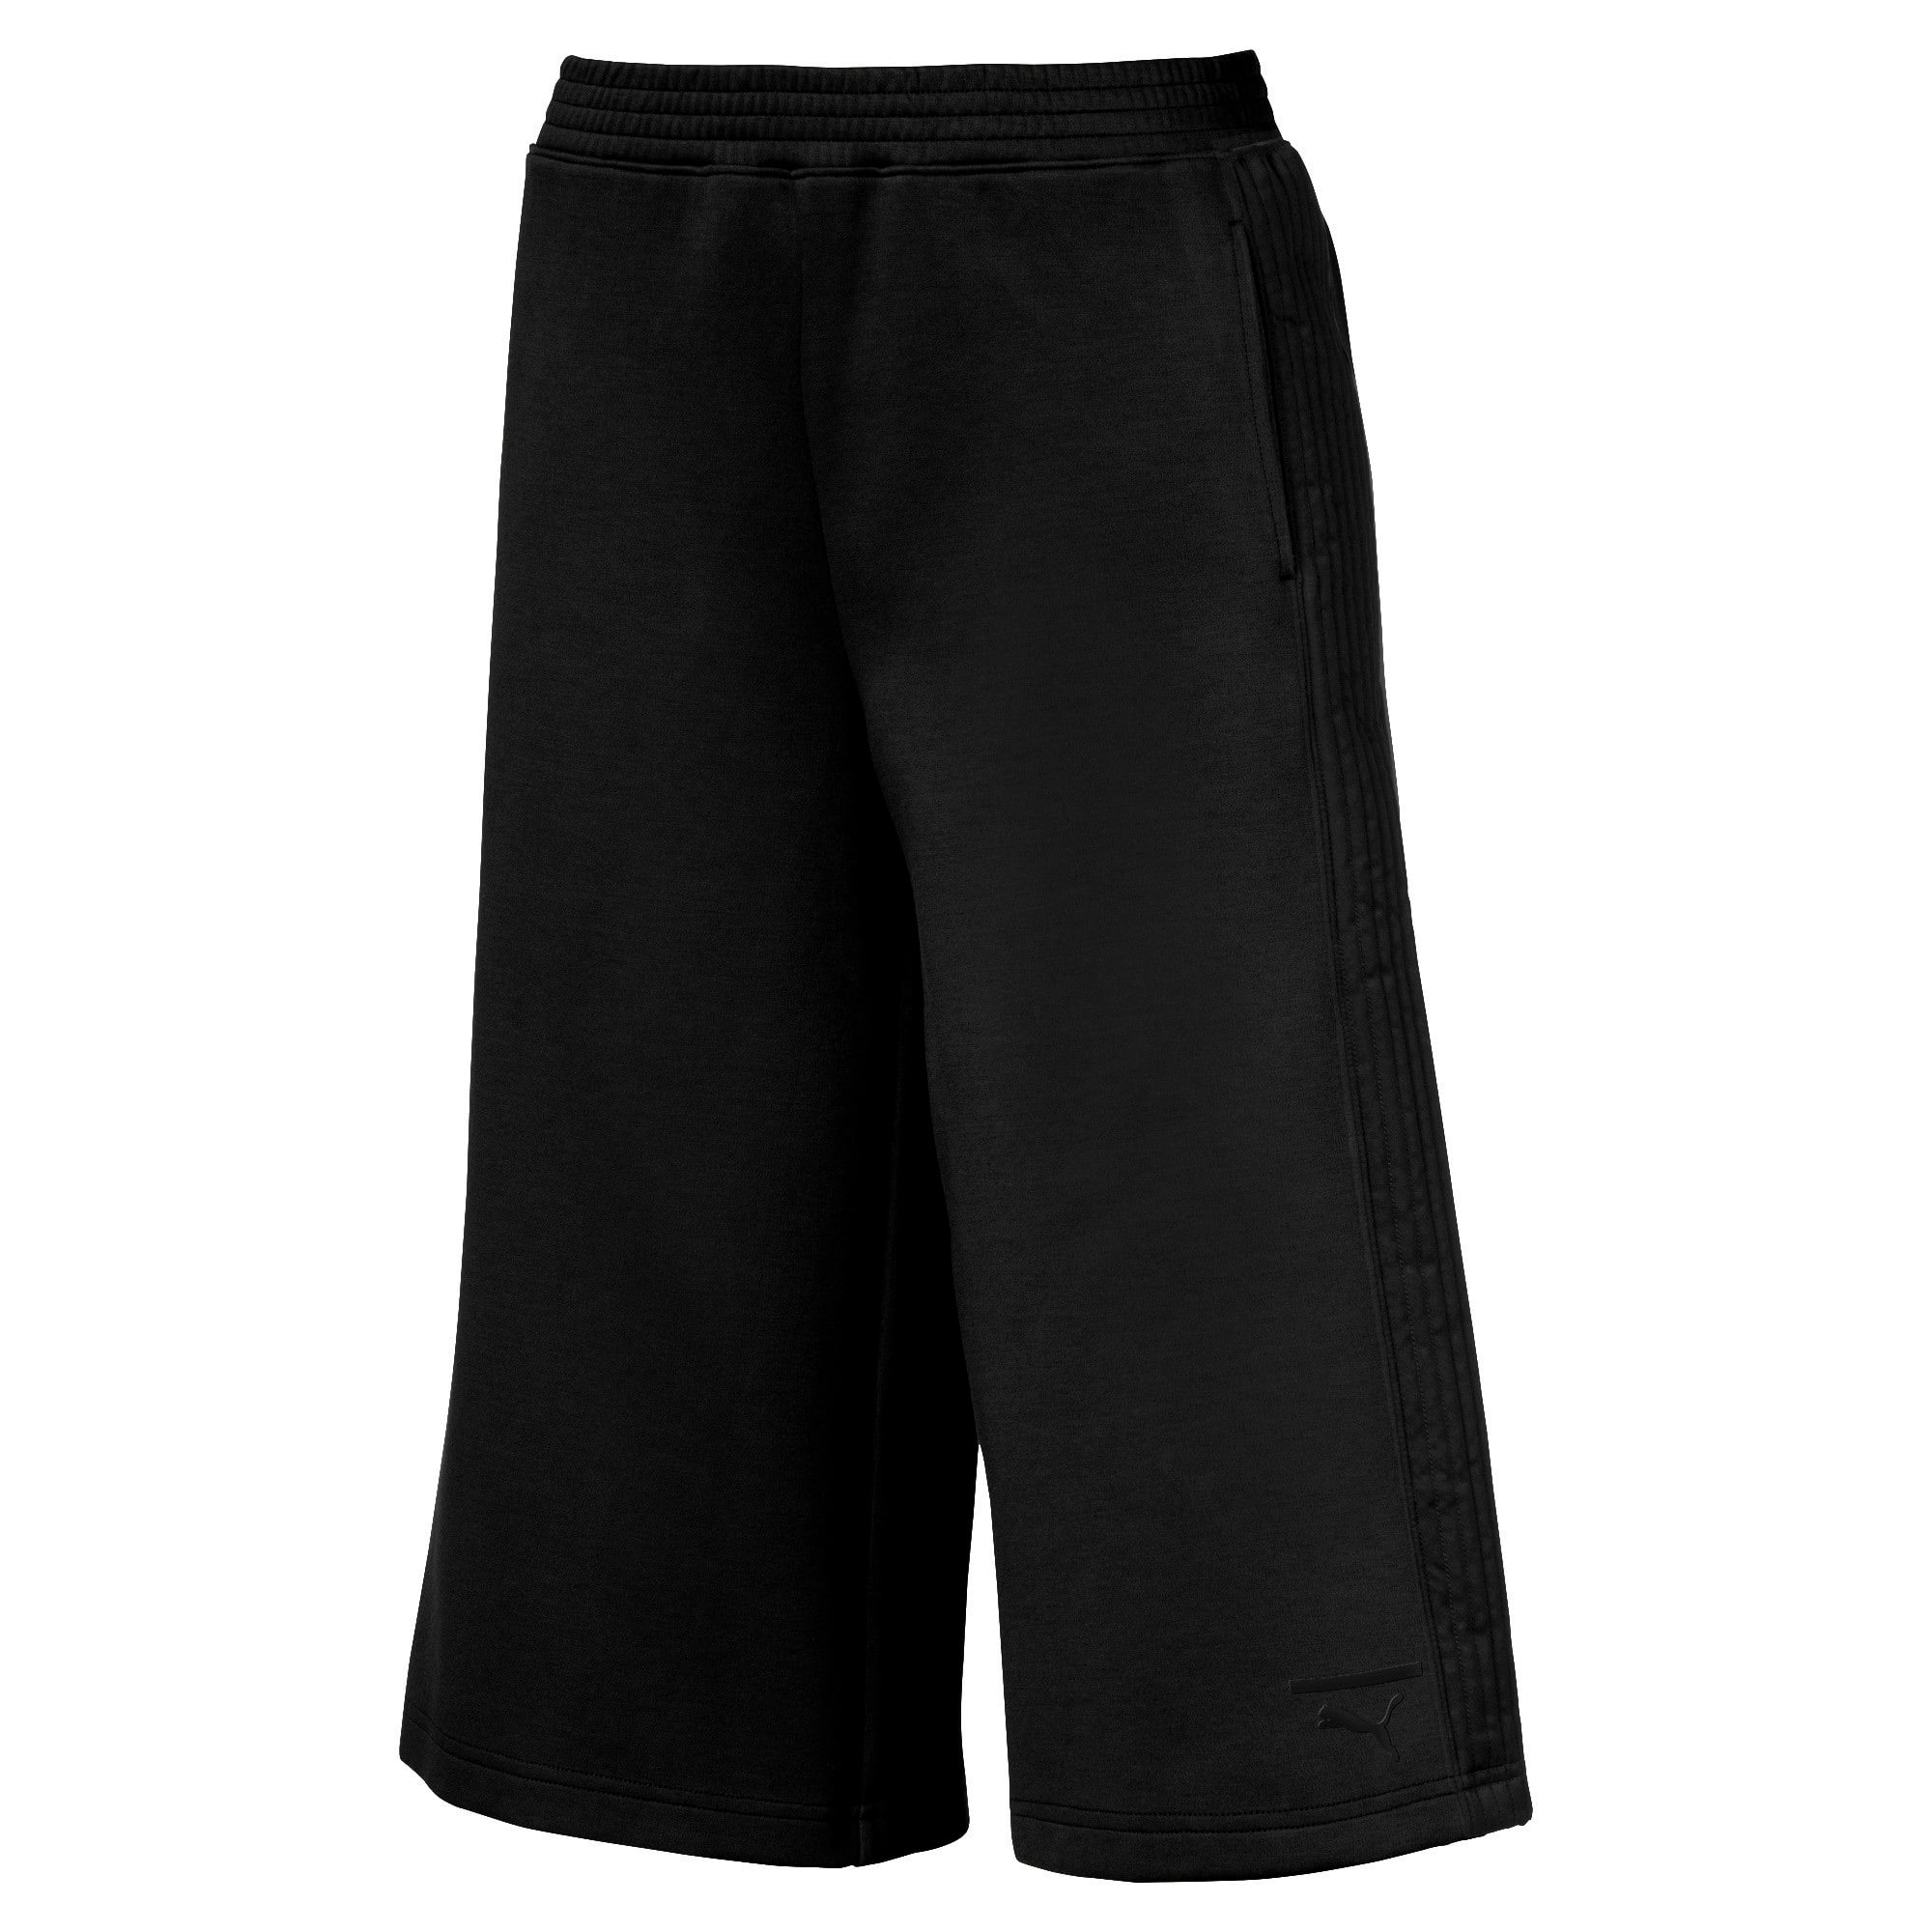 Thumbnail 4 of Evolution Women's Quilted Culottes, Puma Black, medium-IND